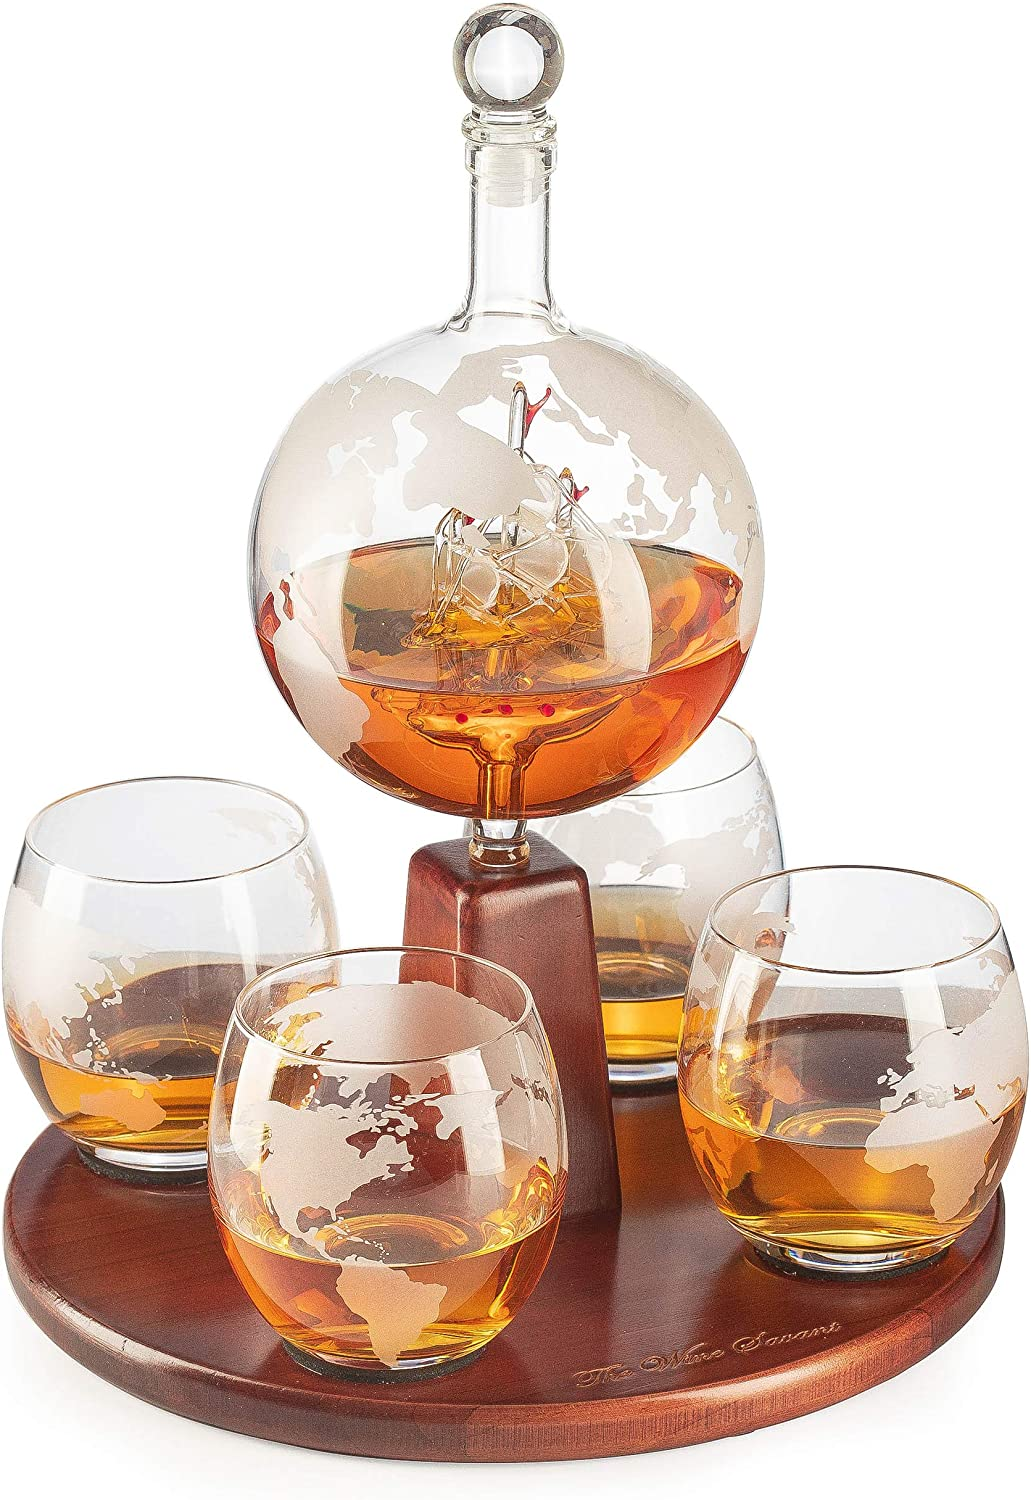 Etched World Decanter Globe Decanter, with Antique Ship and 4 World Map Glasses by The Wine Savant, Great Gifts for Dad, Boyfriend or Anyone